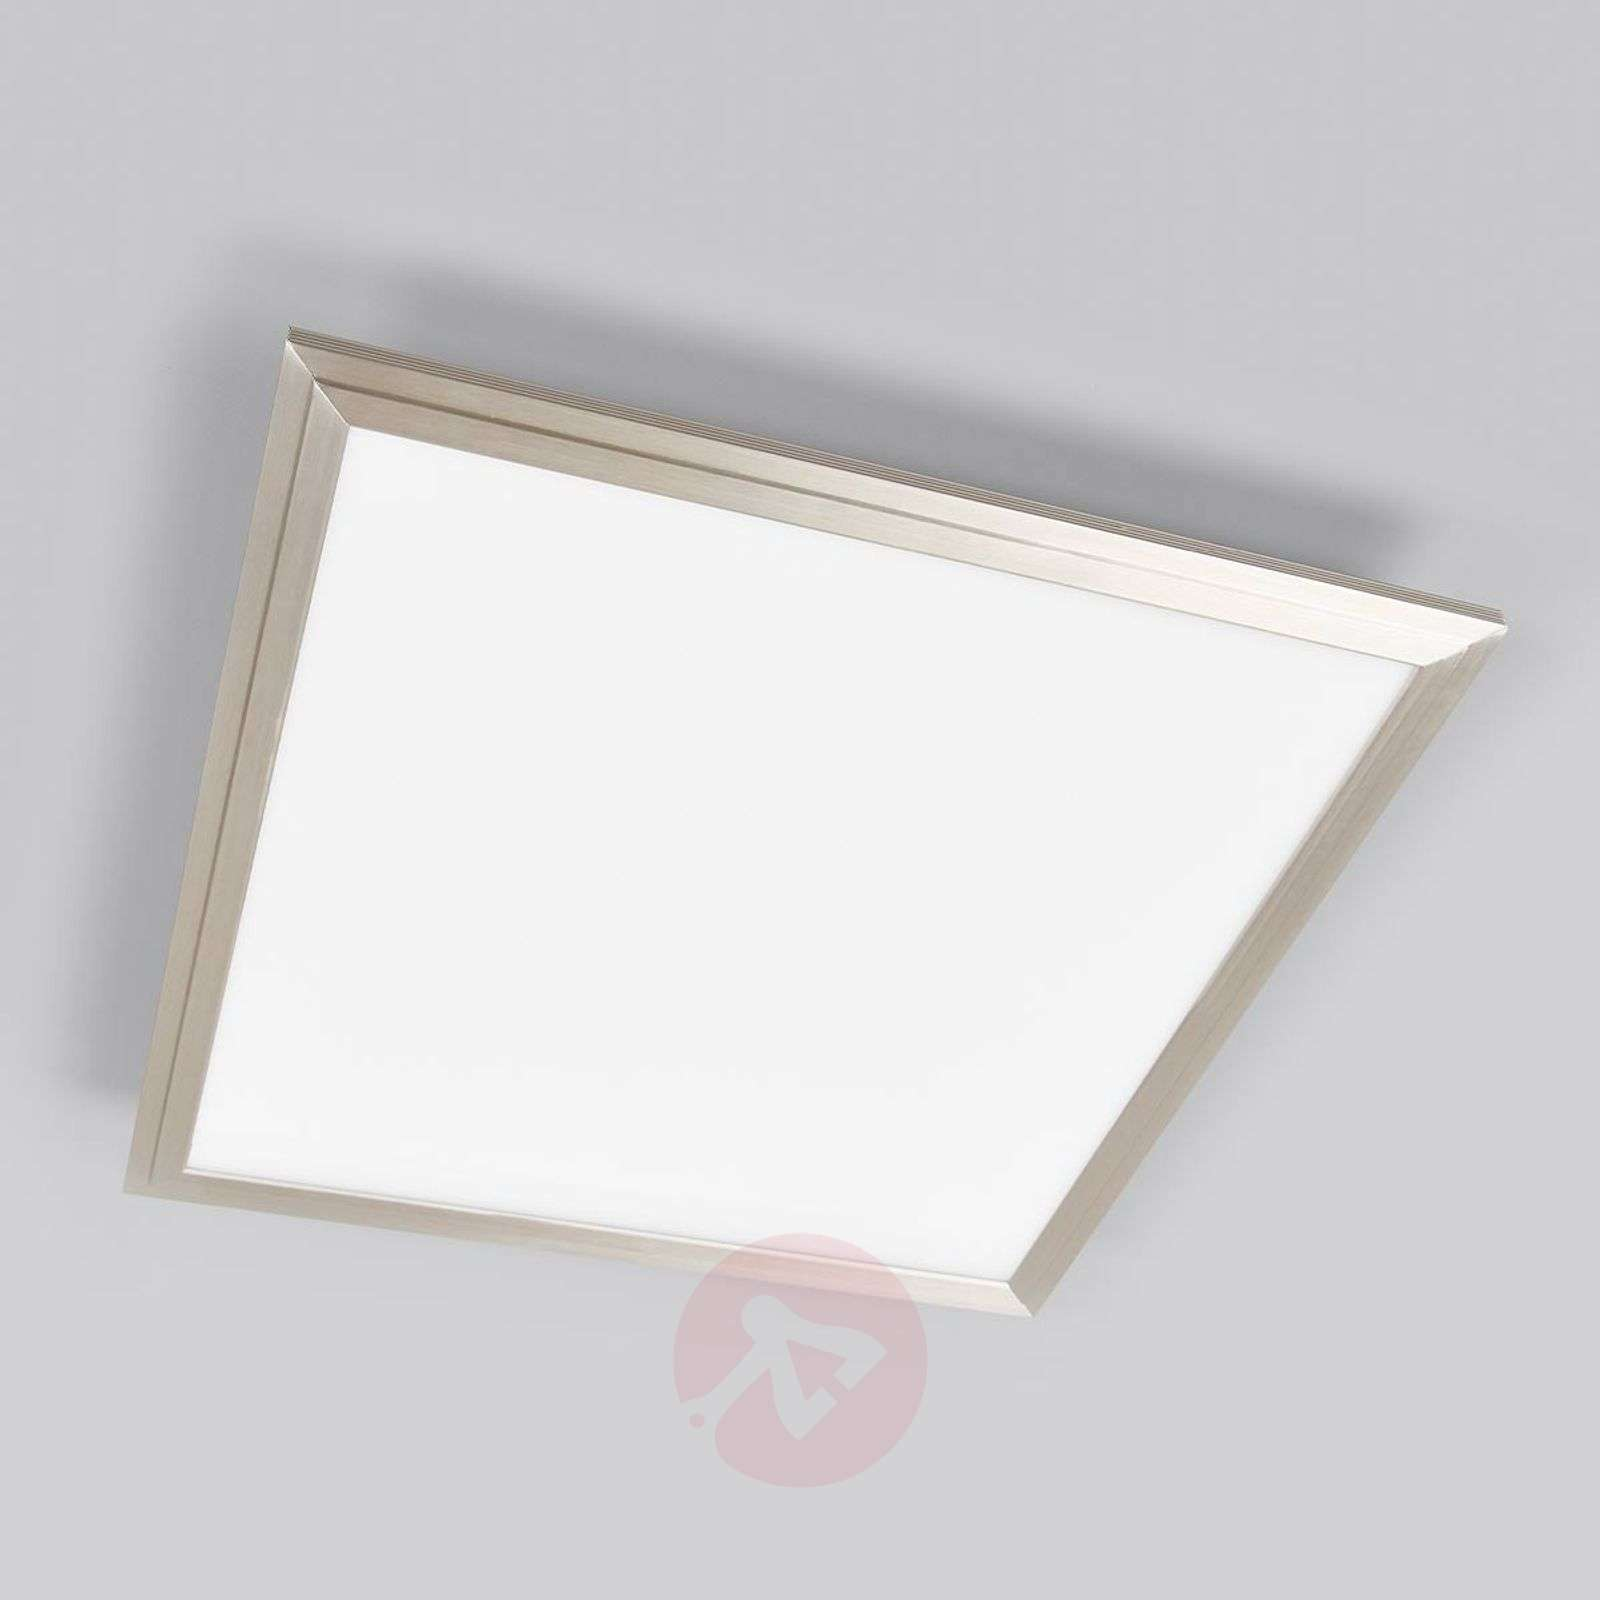 Moira LED ceiling light with Easydim function-1558075-01